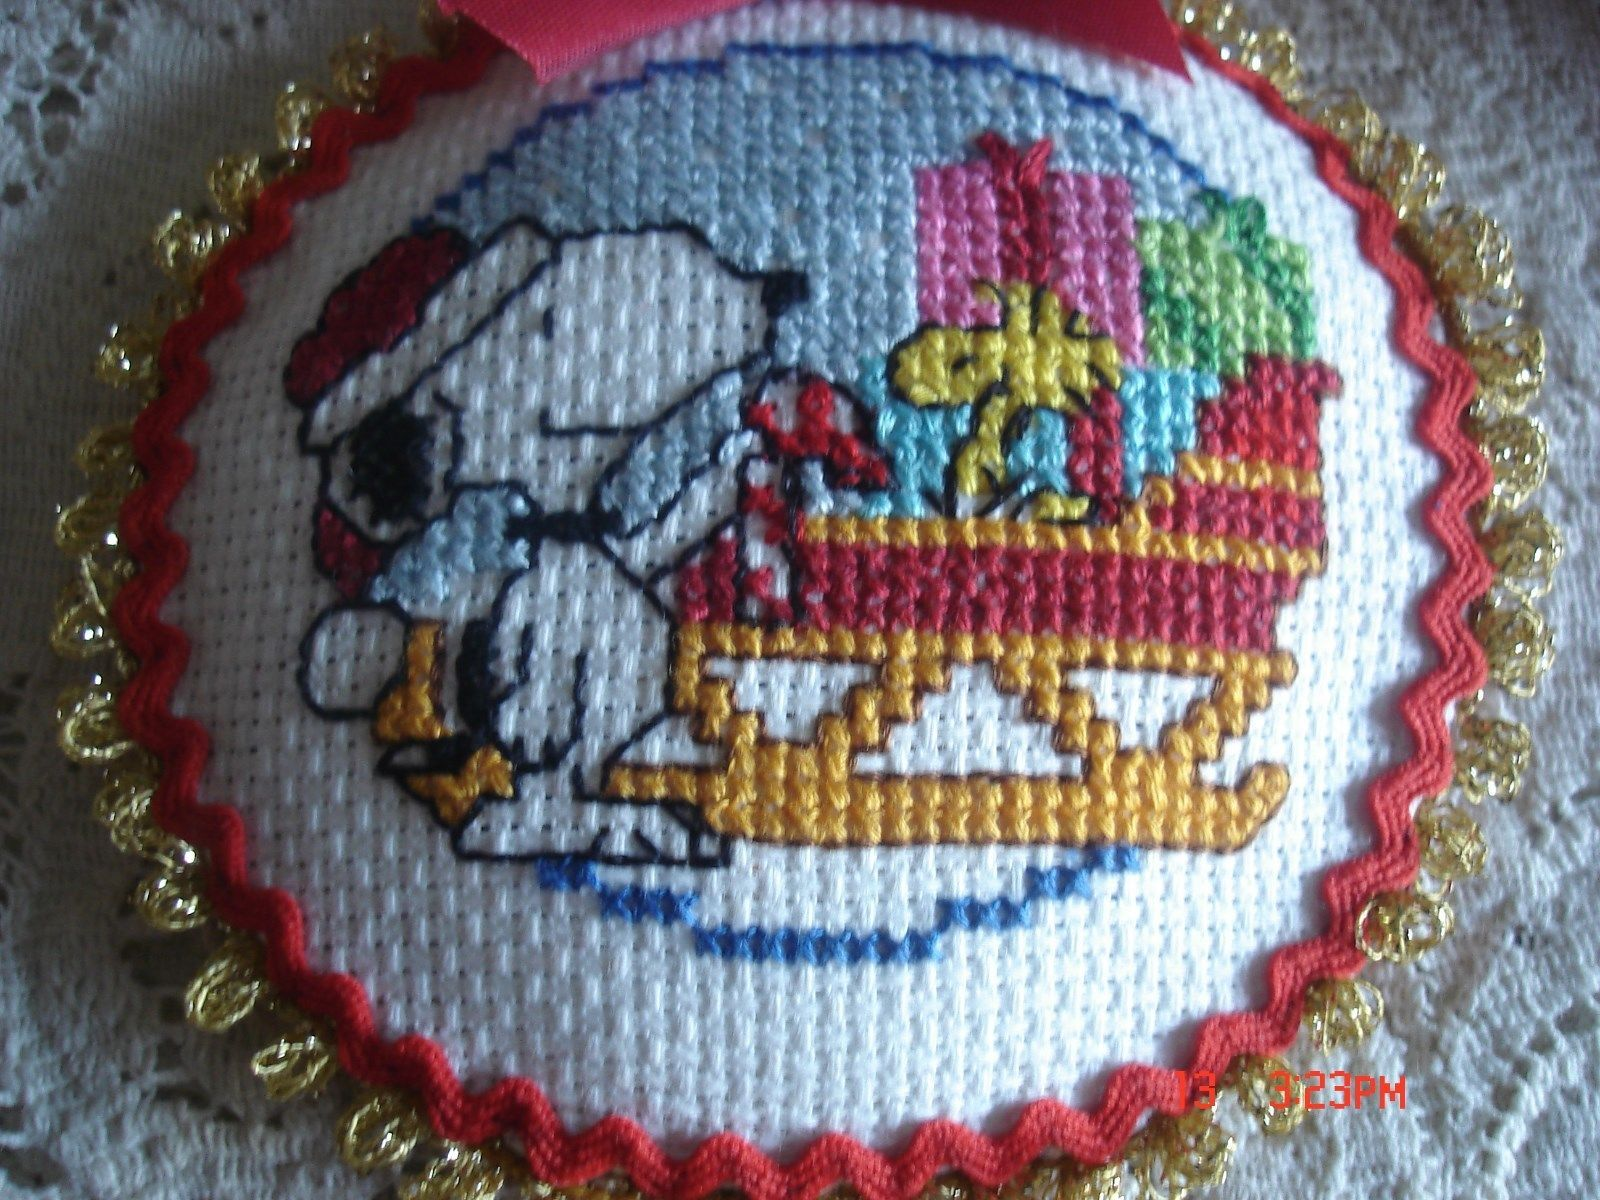 Snoopy, Woodstock and the Sleigh